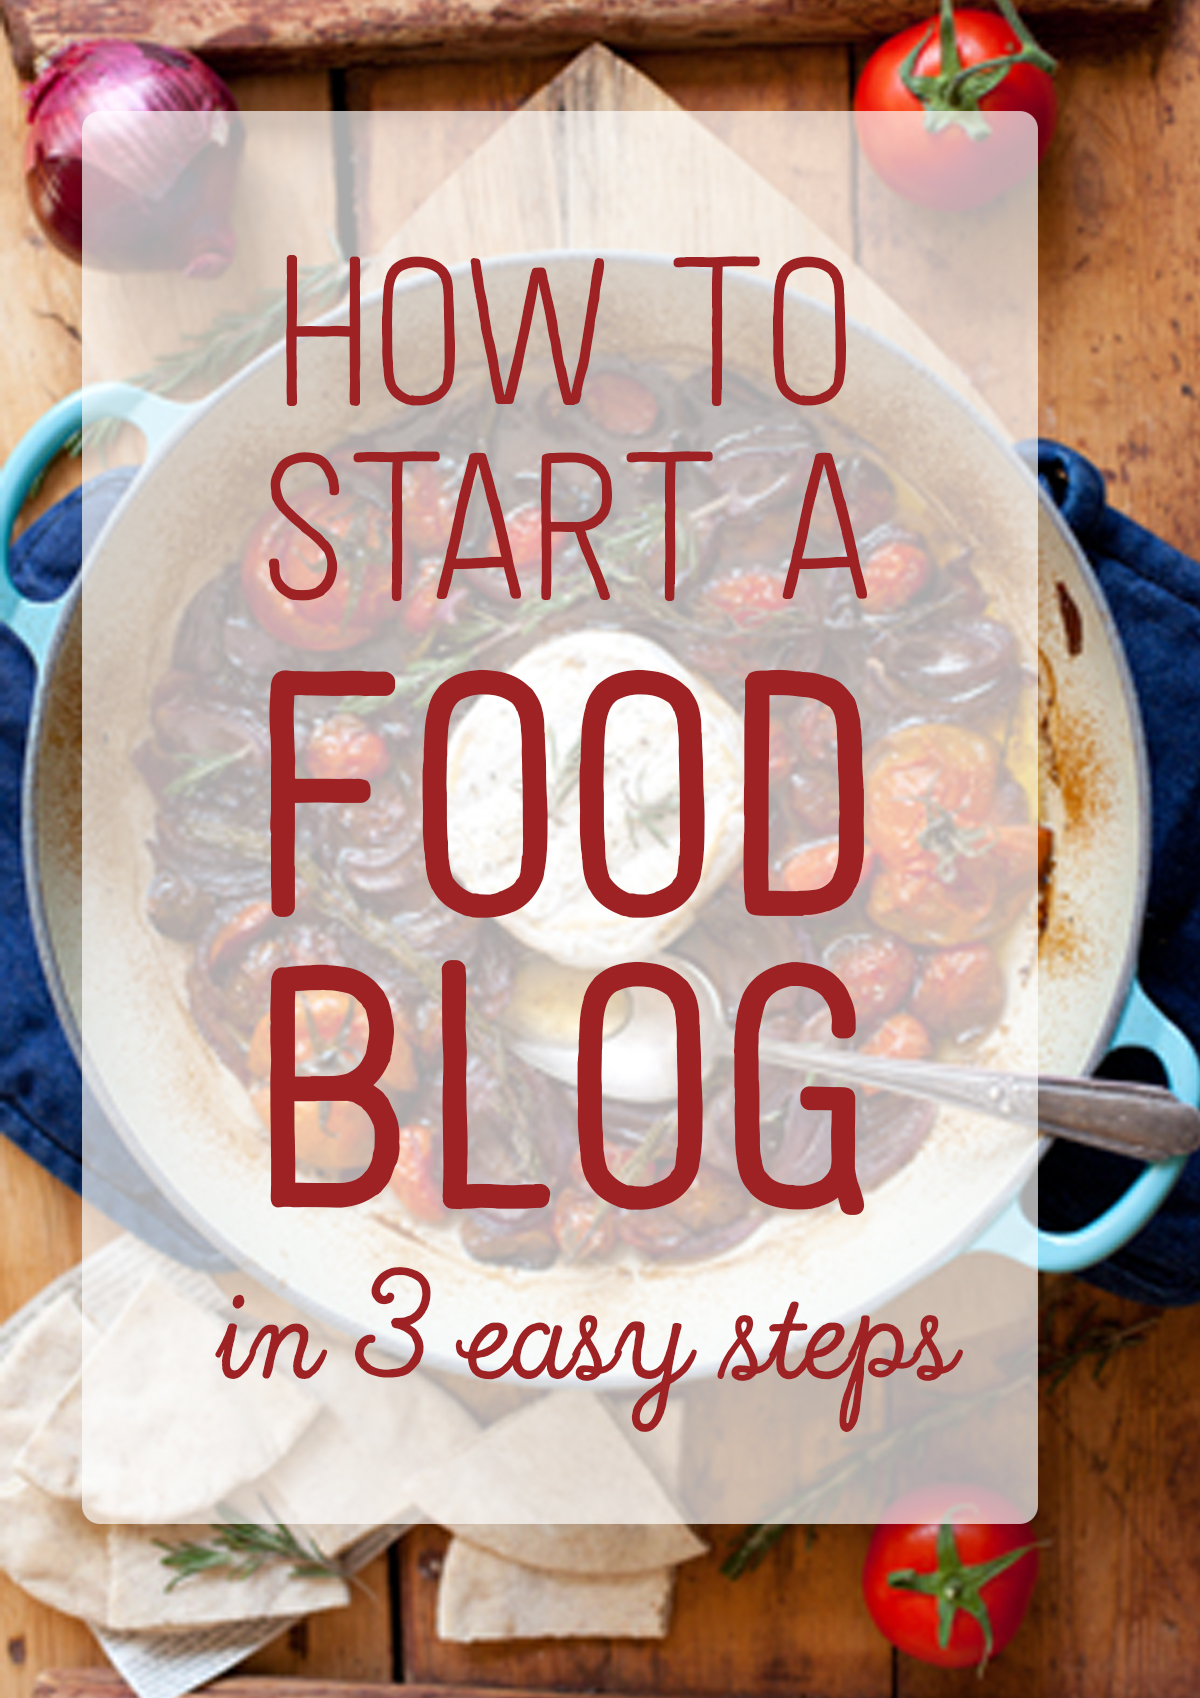 How to Start a Food Blog in 3 Easy Steps - Follow this easy to follow tutorial